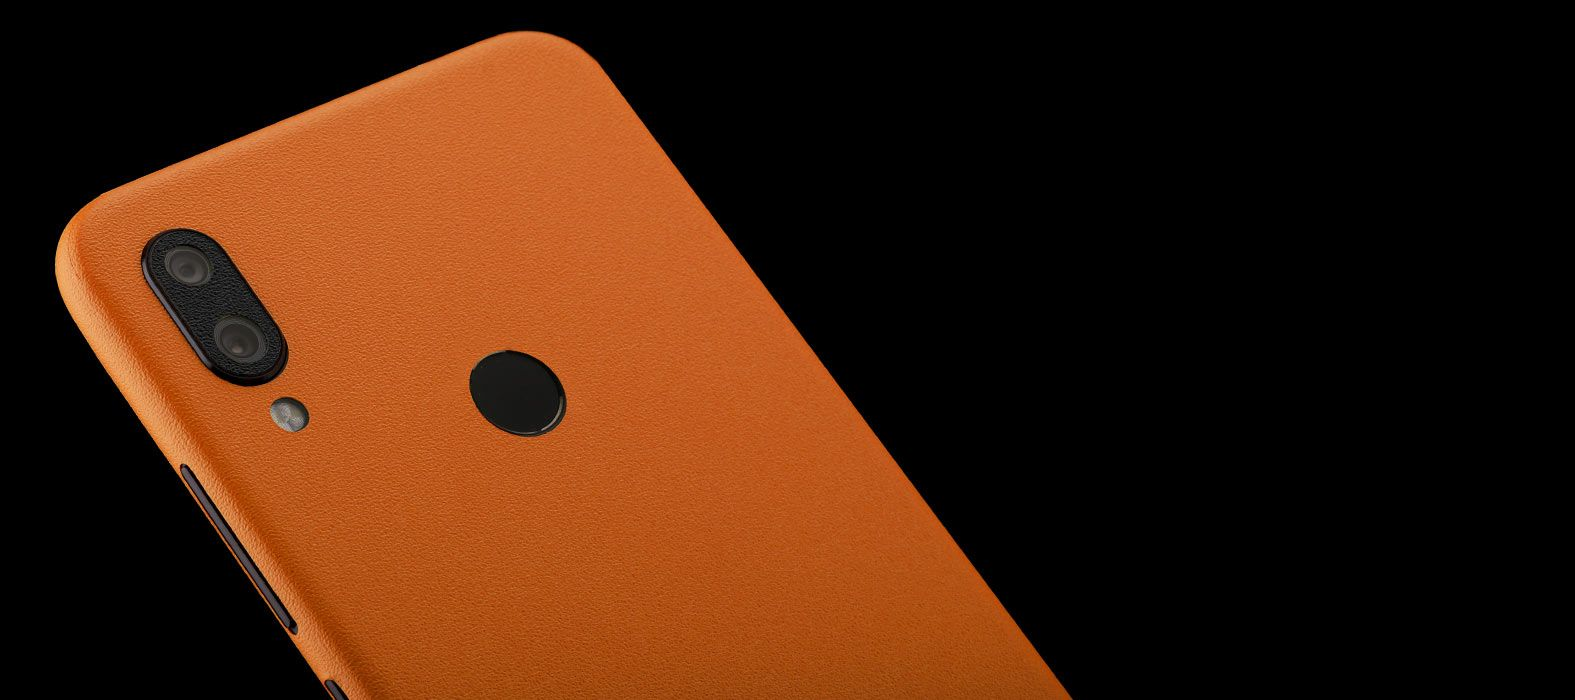 Redmi-note-7_Orange-Sandstone_Skins